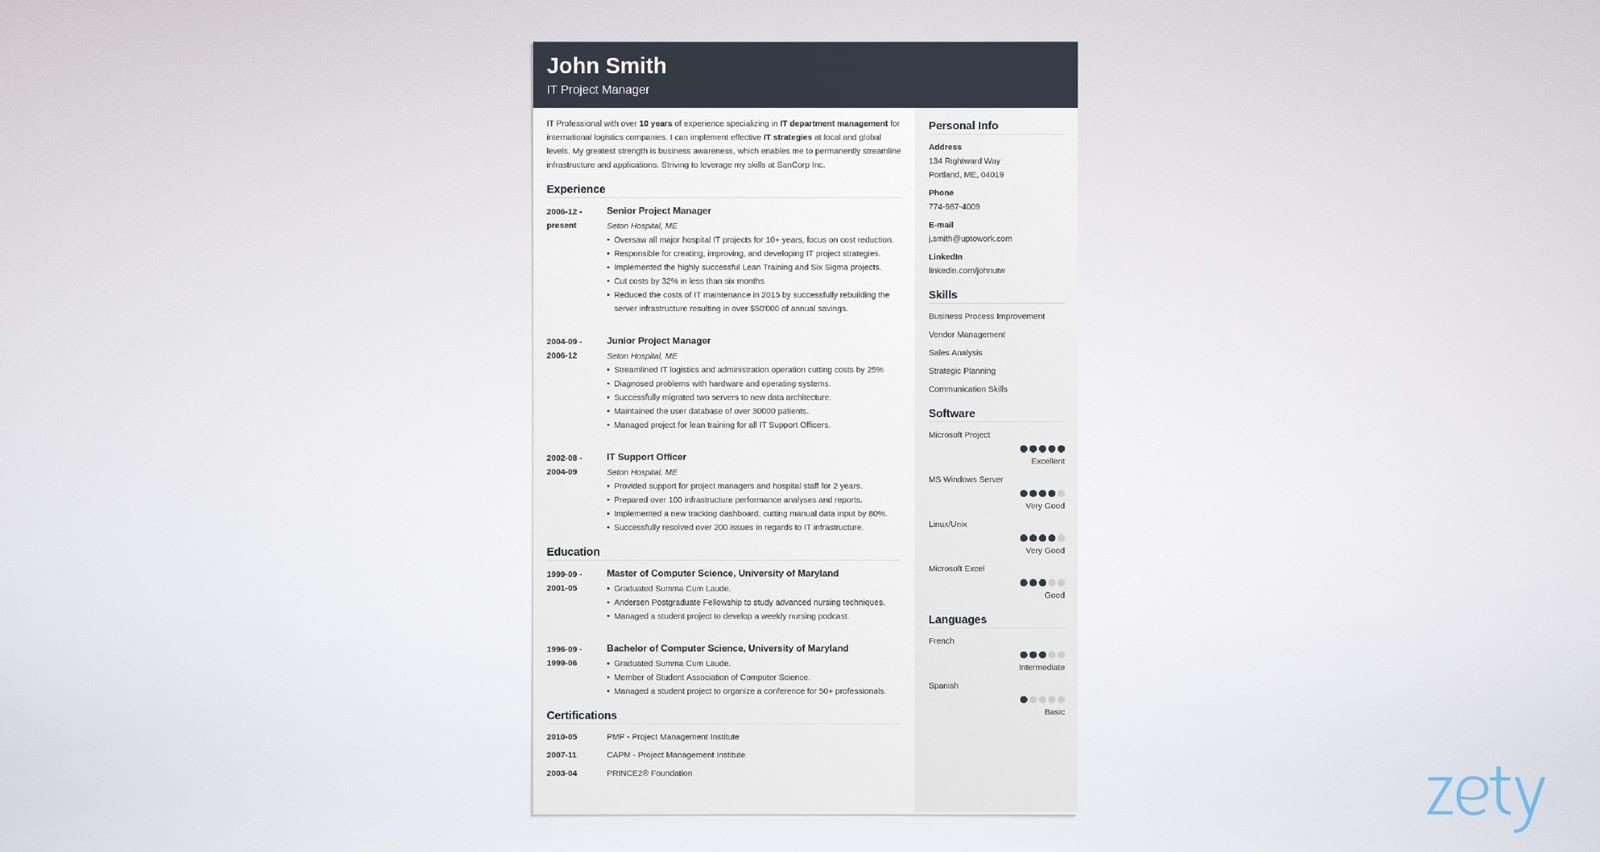 best resume templates for top picks to stanford book leap tsa pmo template social media Resume Best Resume Templates 2020